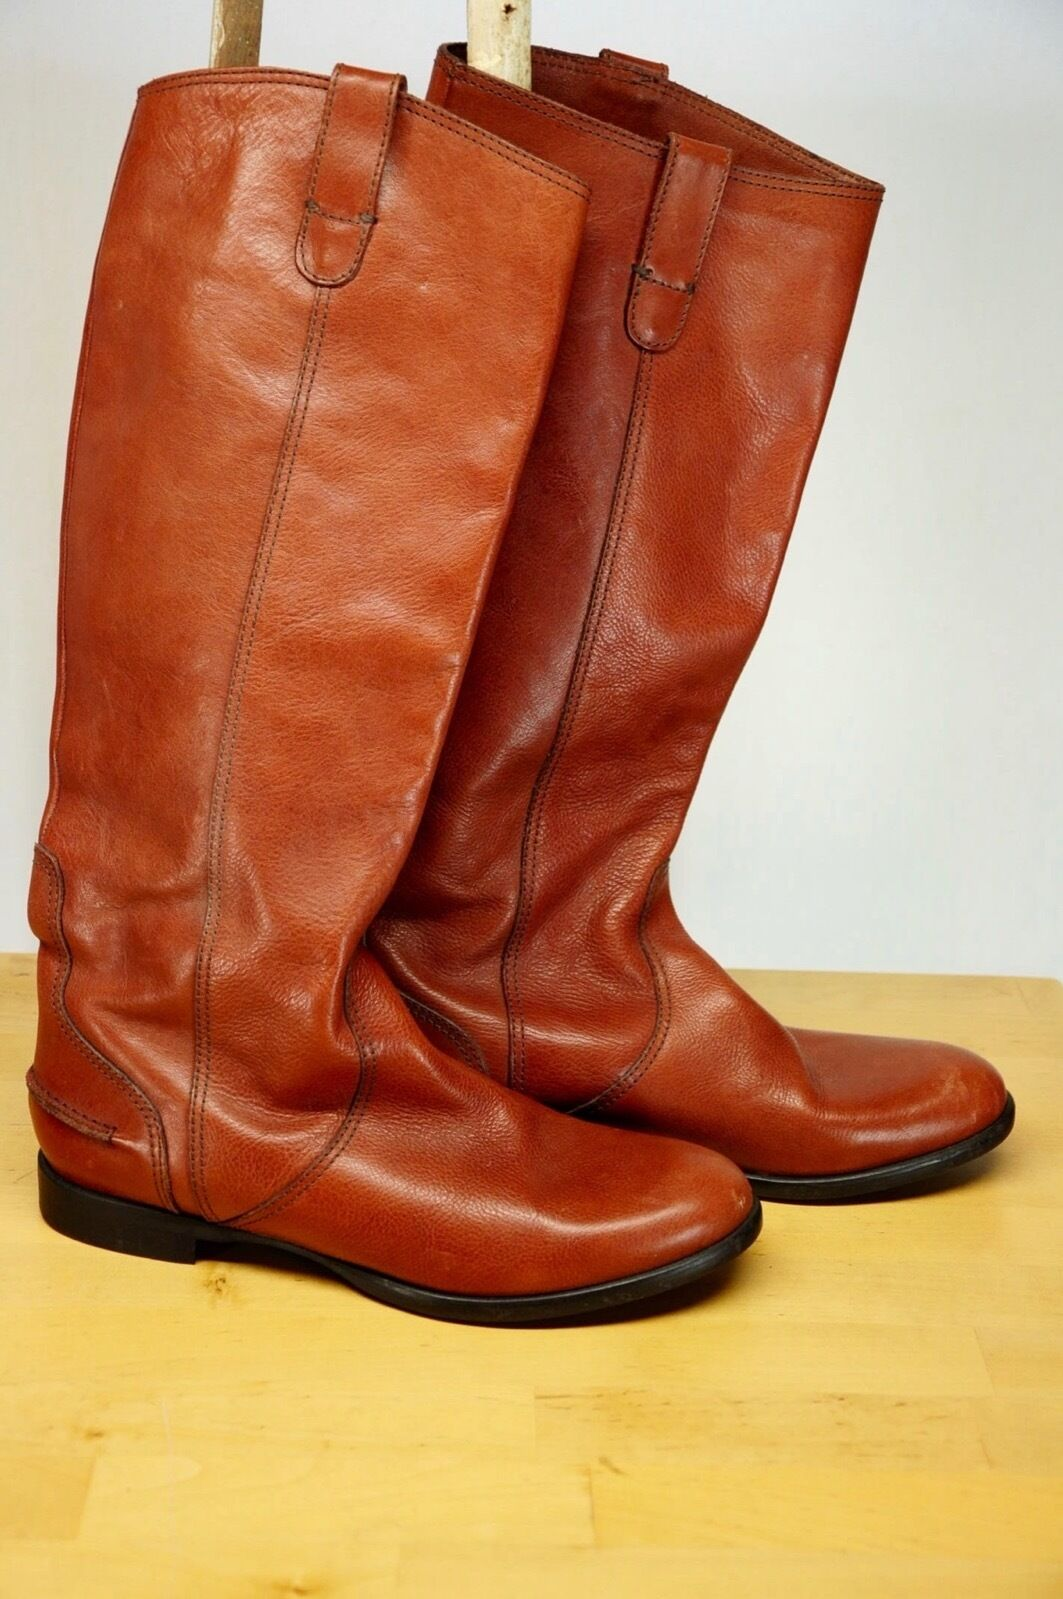 NEW MADEWELL 1937 Brown HIGH Leather Equestrian RIDING BOOTS Made Italy US 9.5